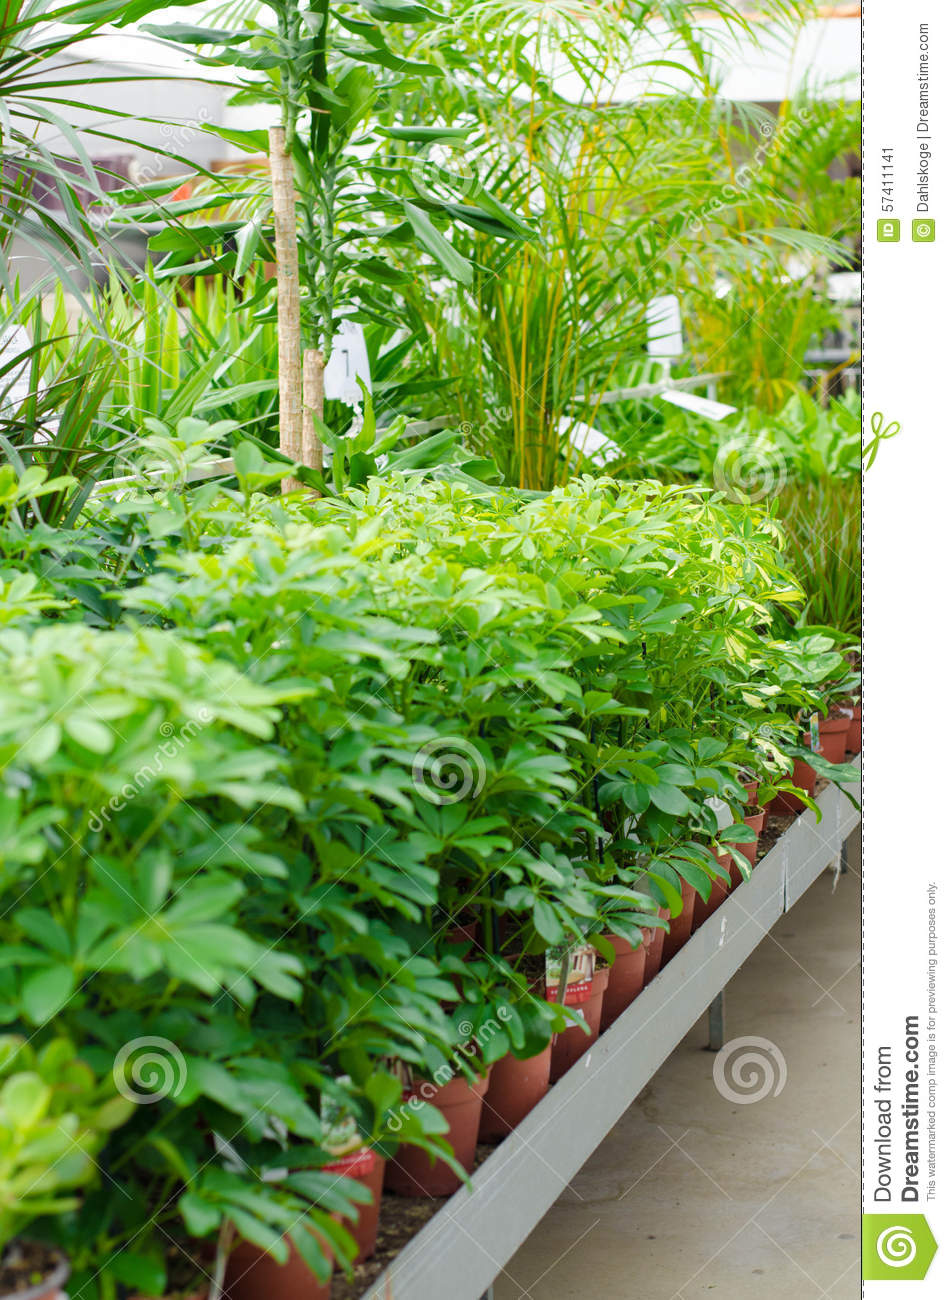 Plants for sale stock photo image 57411141 for Plants for sale